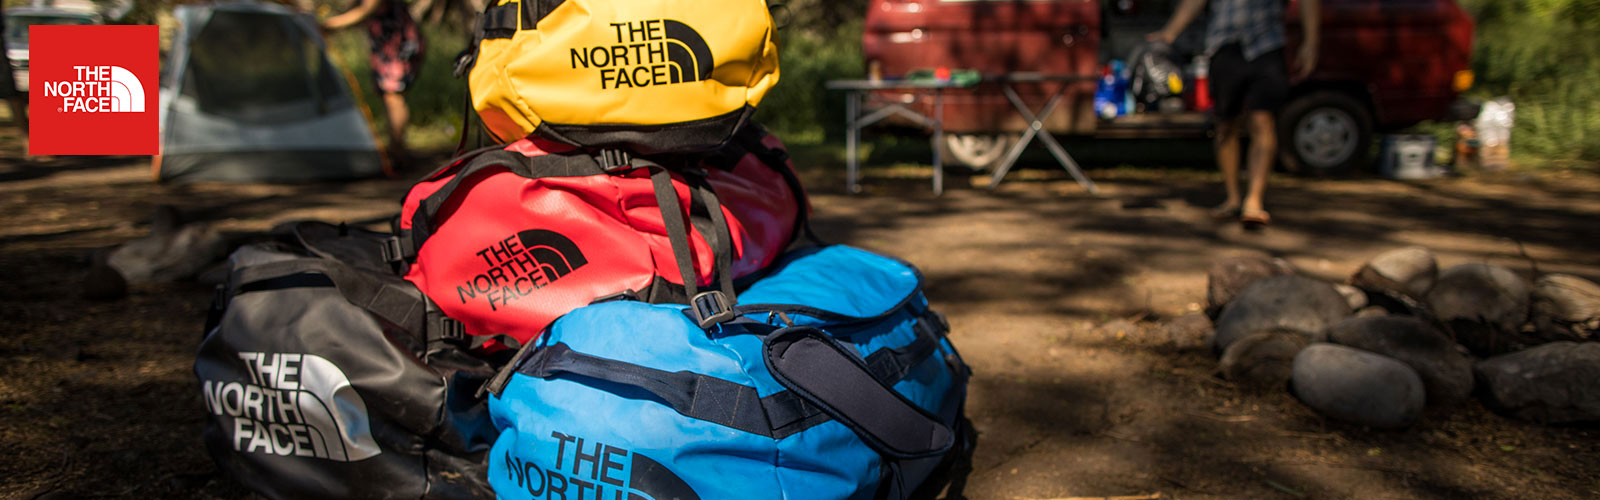 The North Face Backpacks and Bags